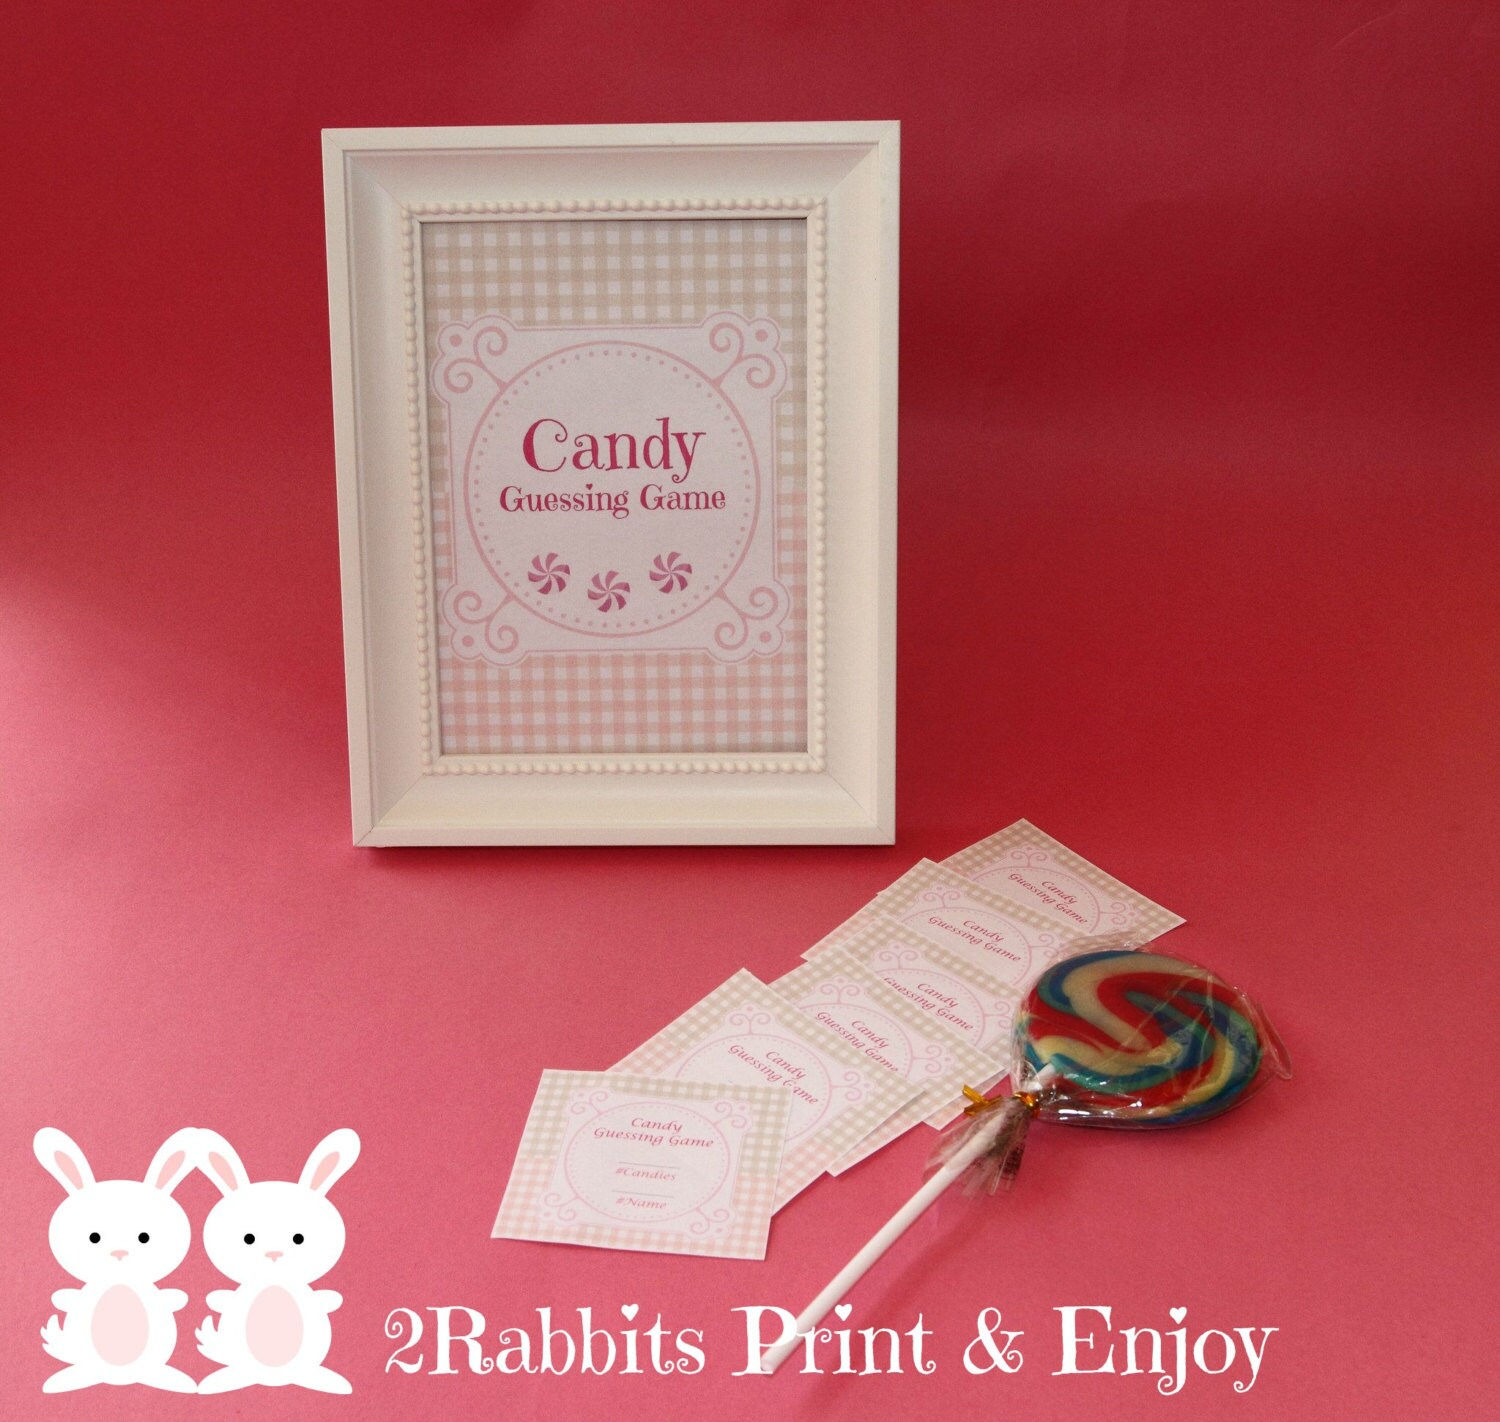 Candy Guessing Game with Matching Sign How Many Candies in the